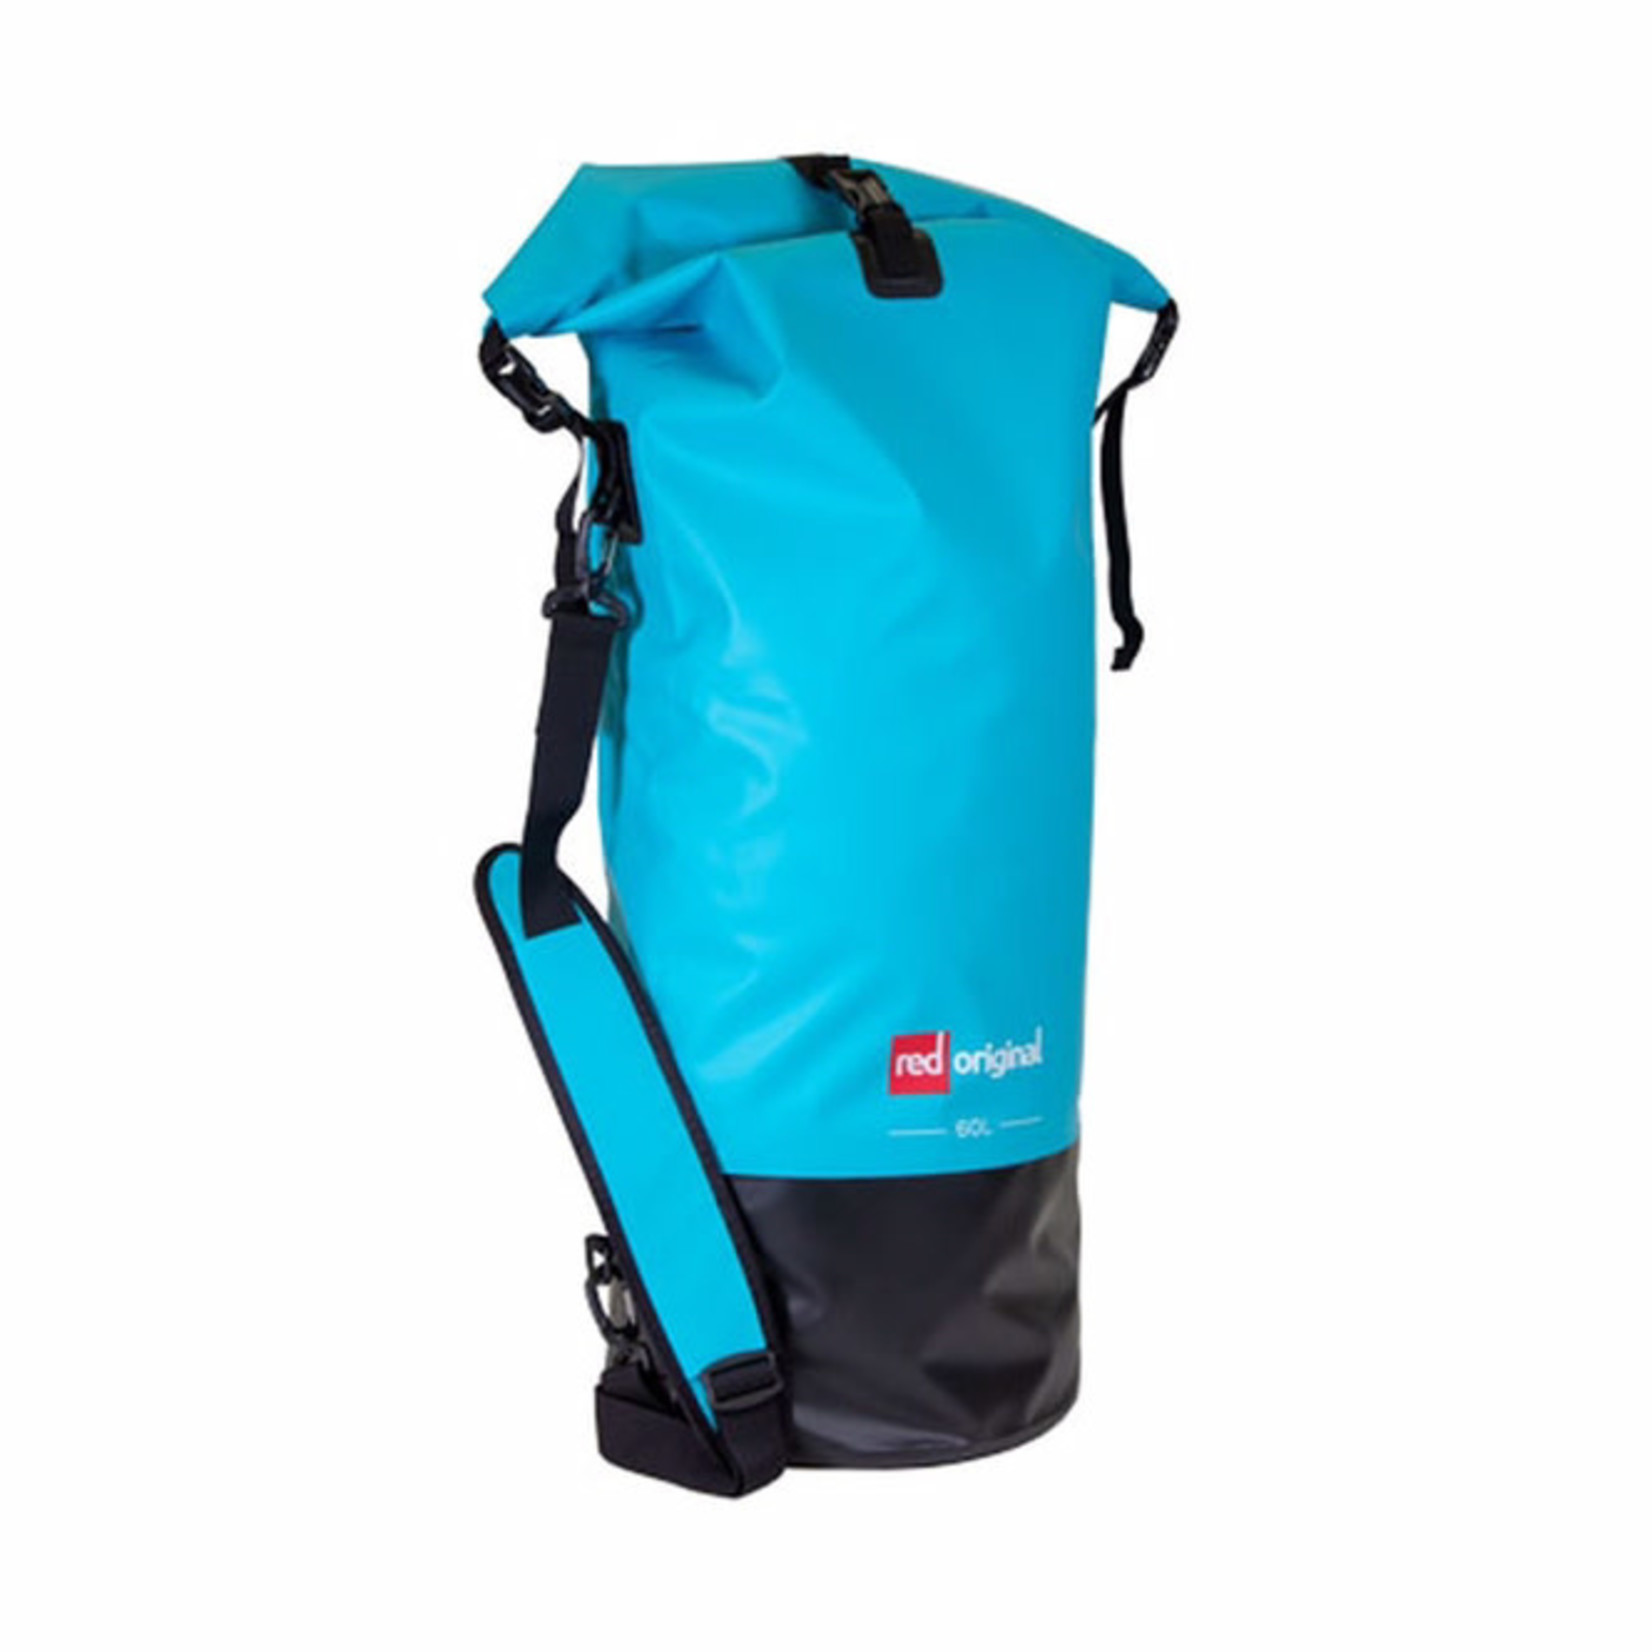 Red Paddle Co. 60L Dry Bag